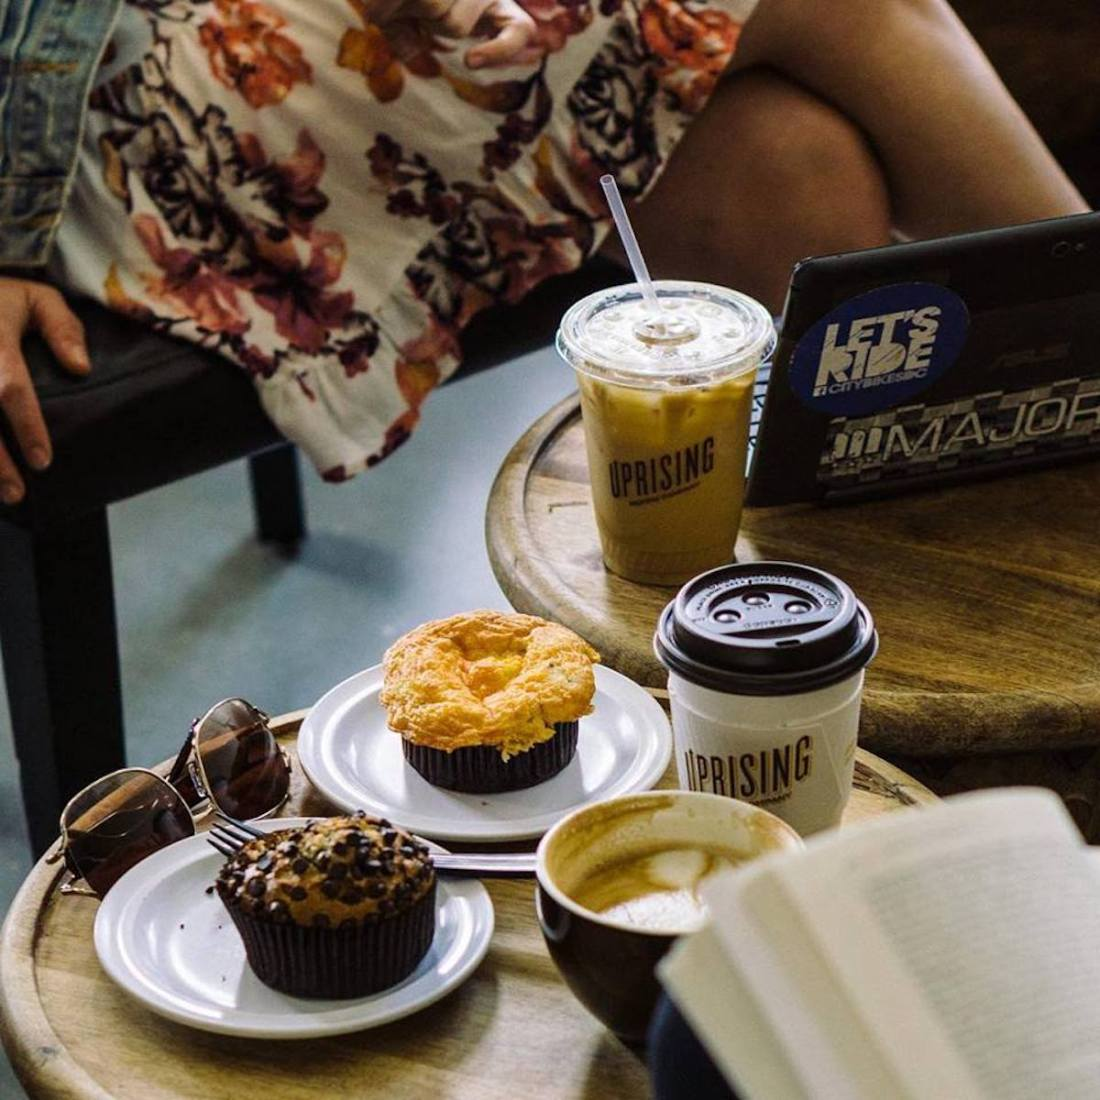 Uprising Muffin Company, Uncle Bobbie's Coffee & Books, Breukelen Coffee House, Starbucks, African American Entrepreneurs, African American Businesses, BuyBlack, Shoppe Black, Race, Racism, American Racism, KINDR'D Magazine, KINDR'D, KOLUMN Magazine, KOLUMN